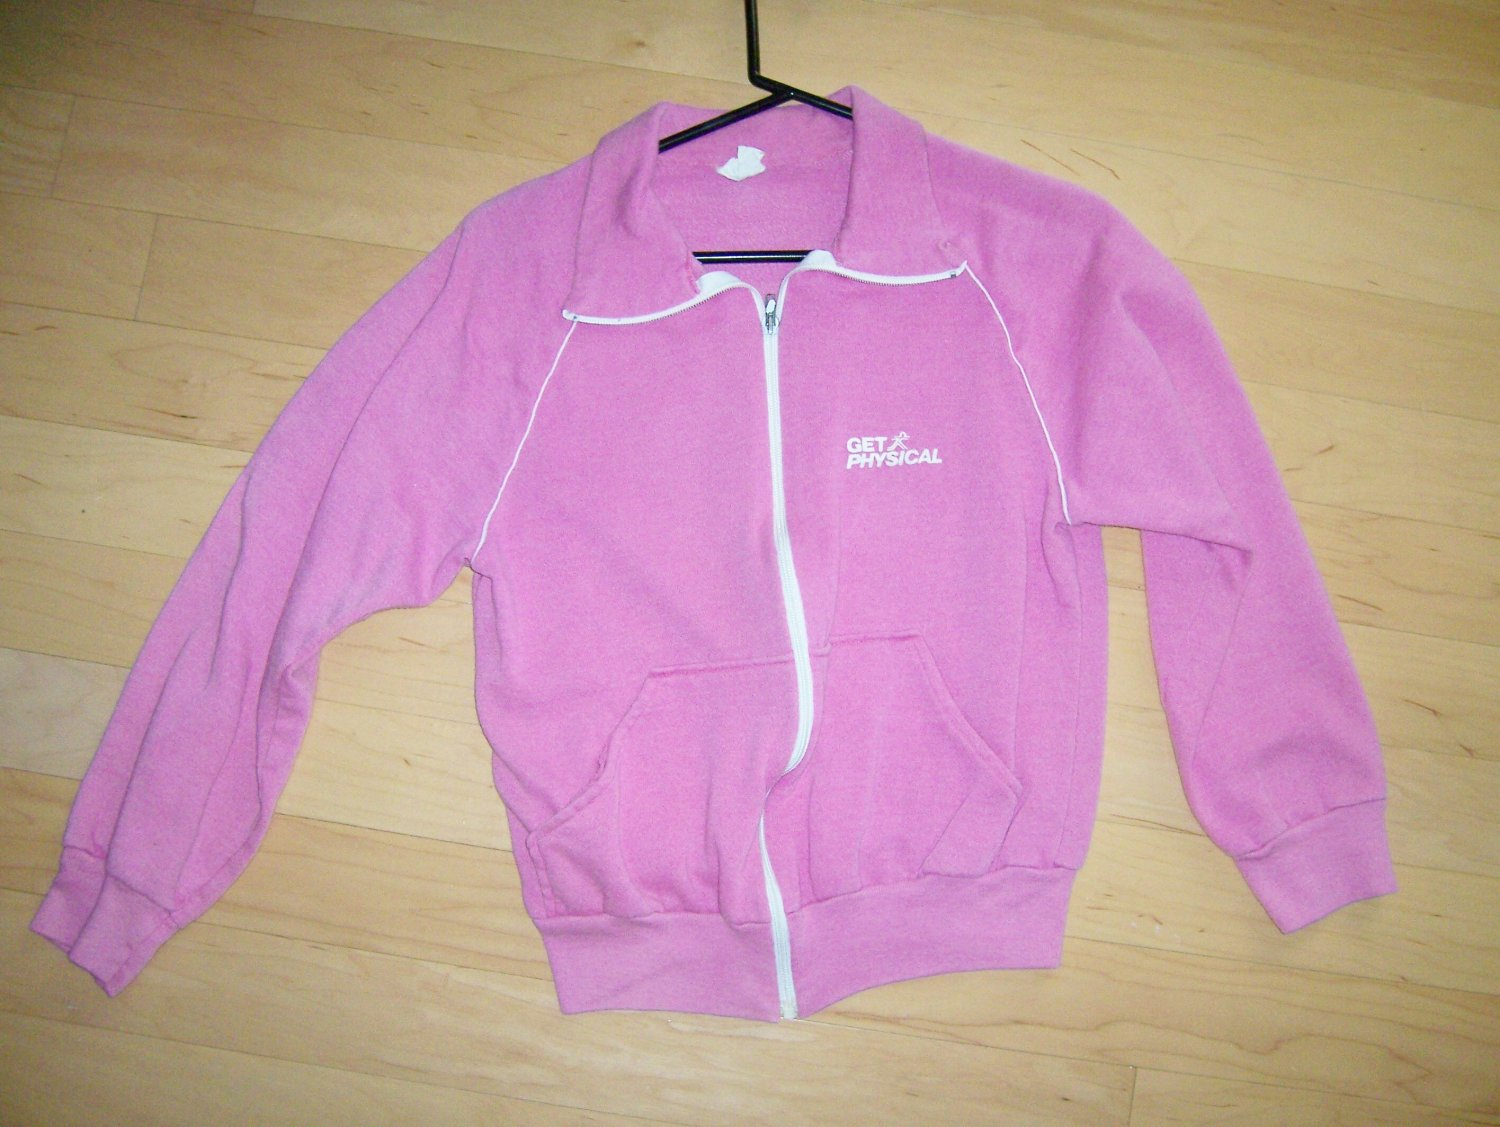 JAcket Get Physical Logoed  Med Polyester/Cotton BNK1532